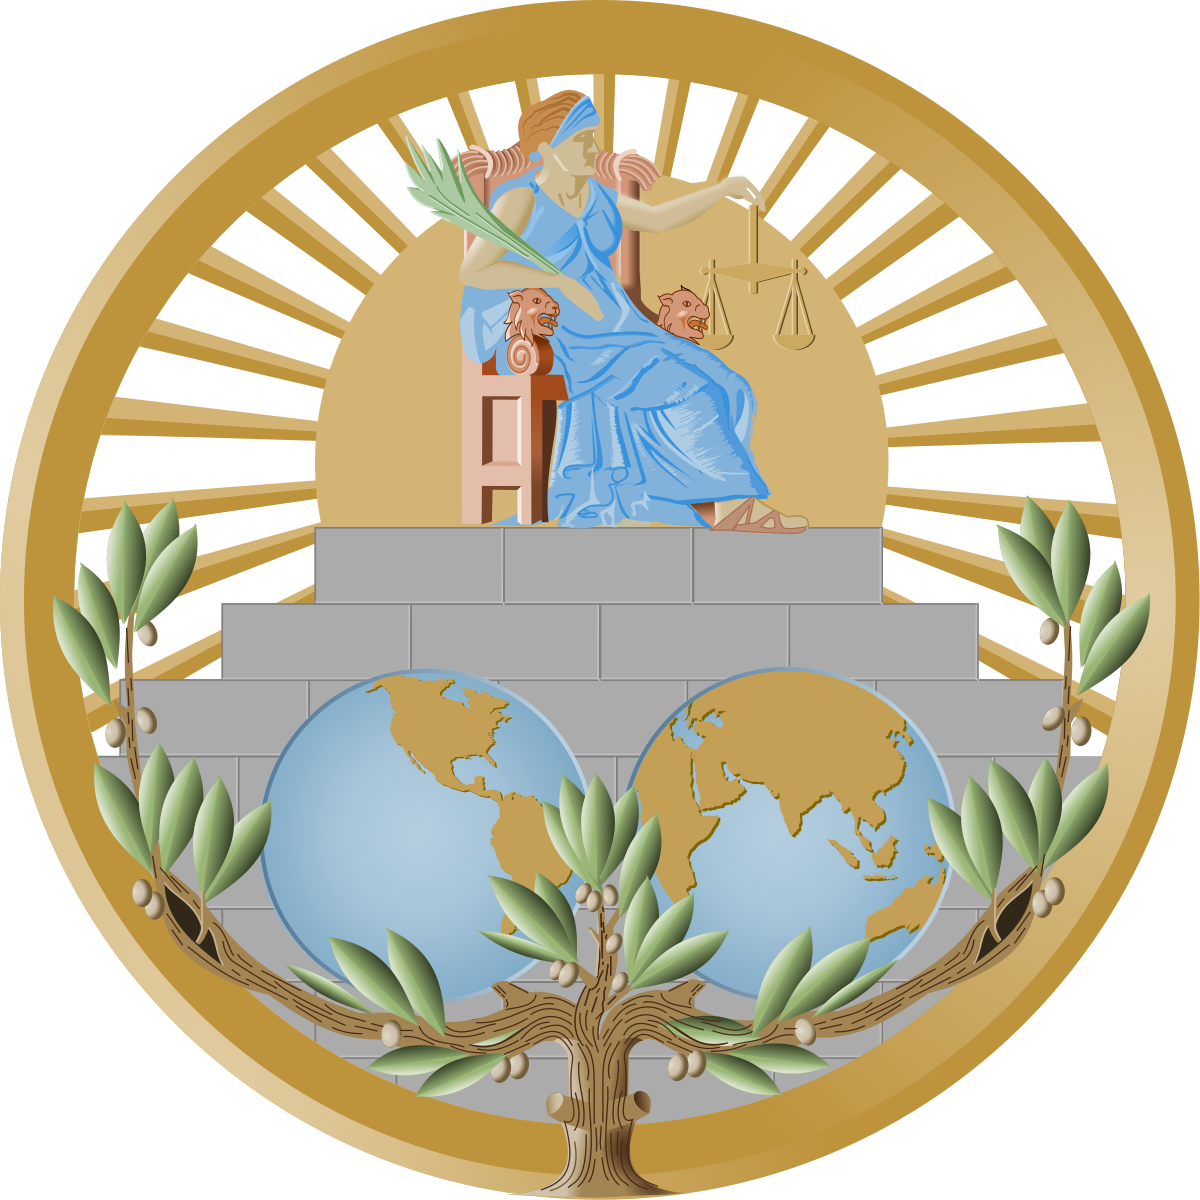 Clipart national court decisions freeuse stock International Court of Justice - Wikipedia freeuse stock